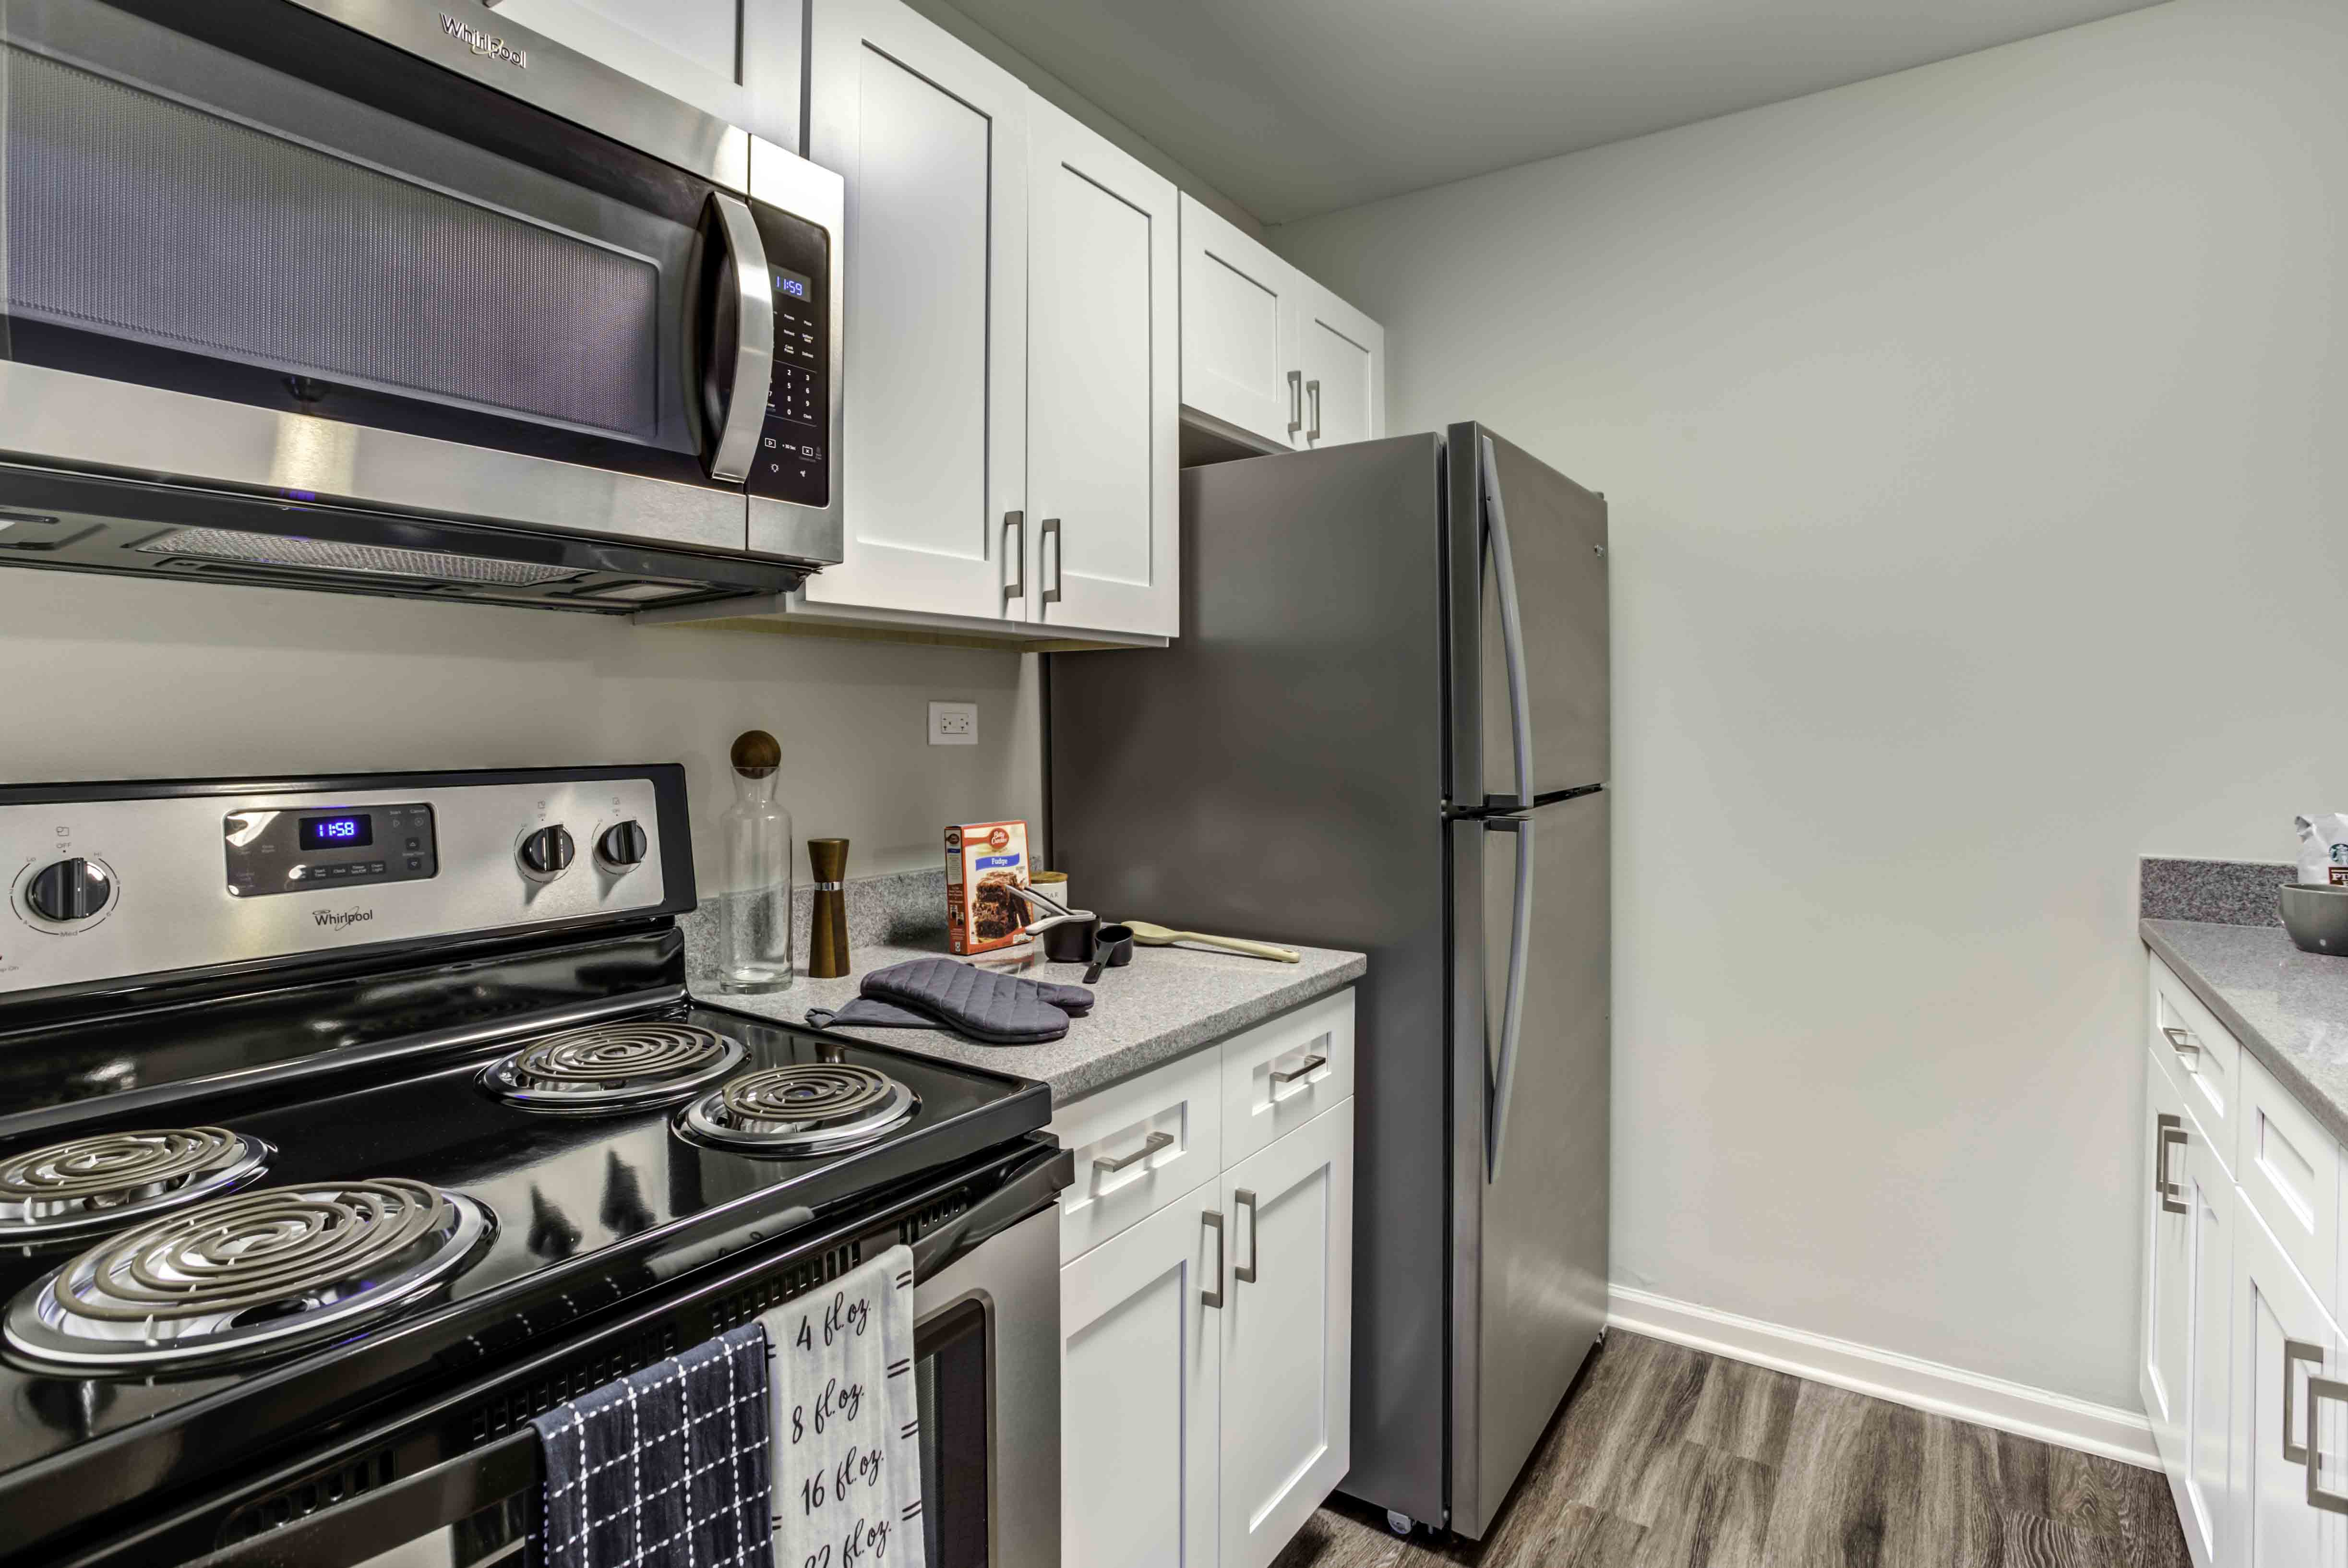 Apartments Near North Central Orion 59 for North Central College Students in Naperville, IL